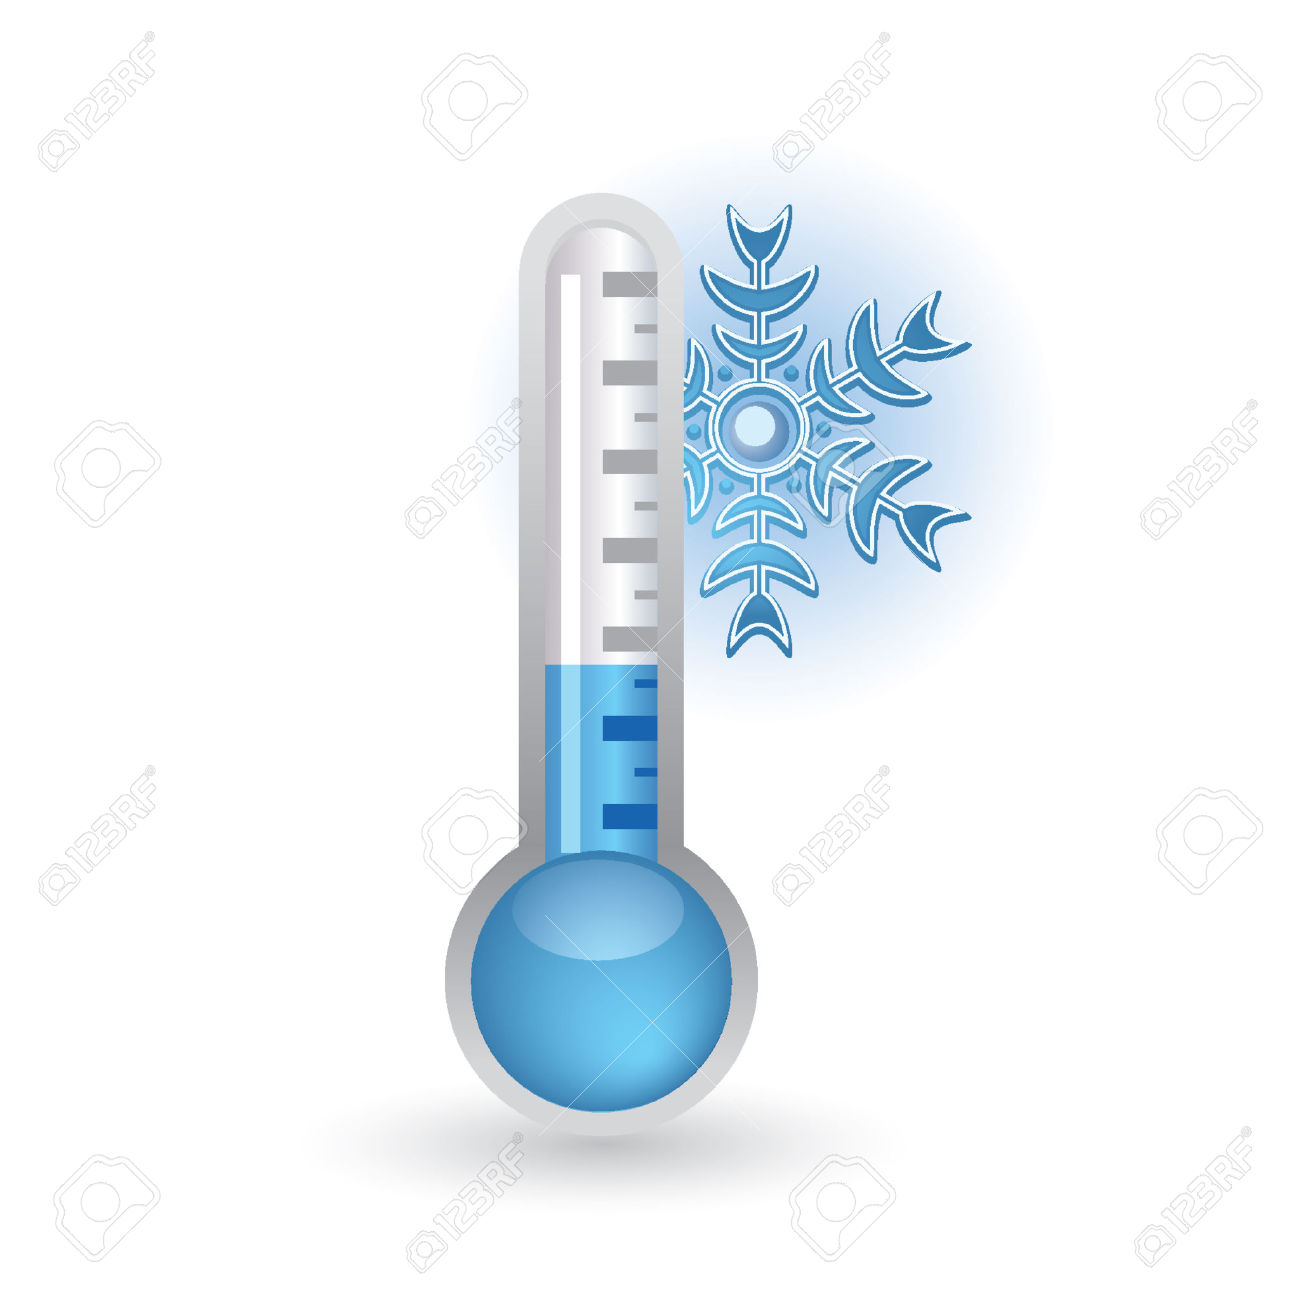 Coldness clipart #3, Download drawings